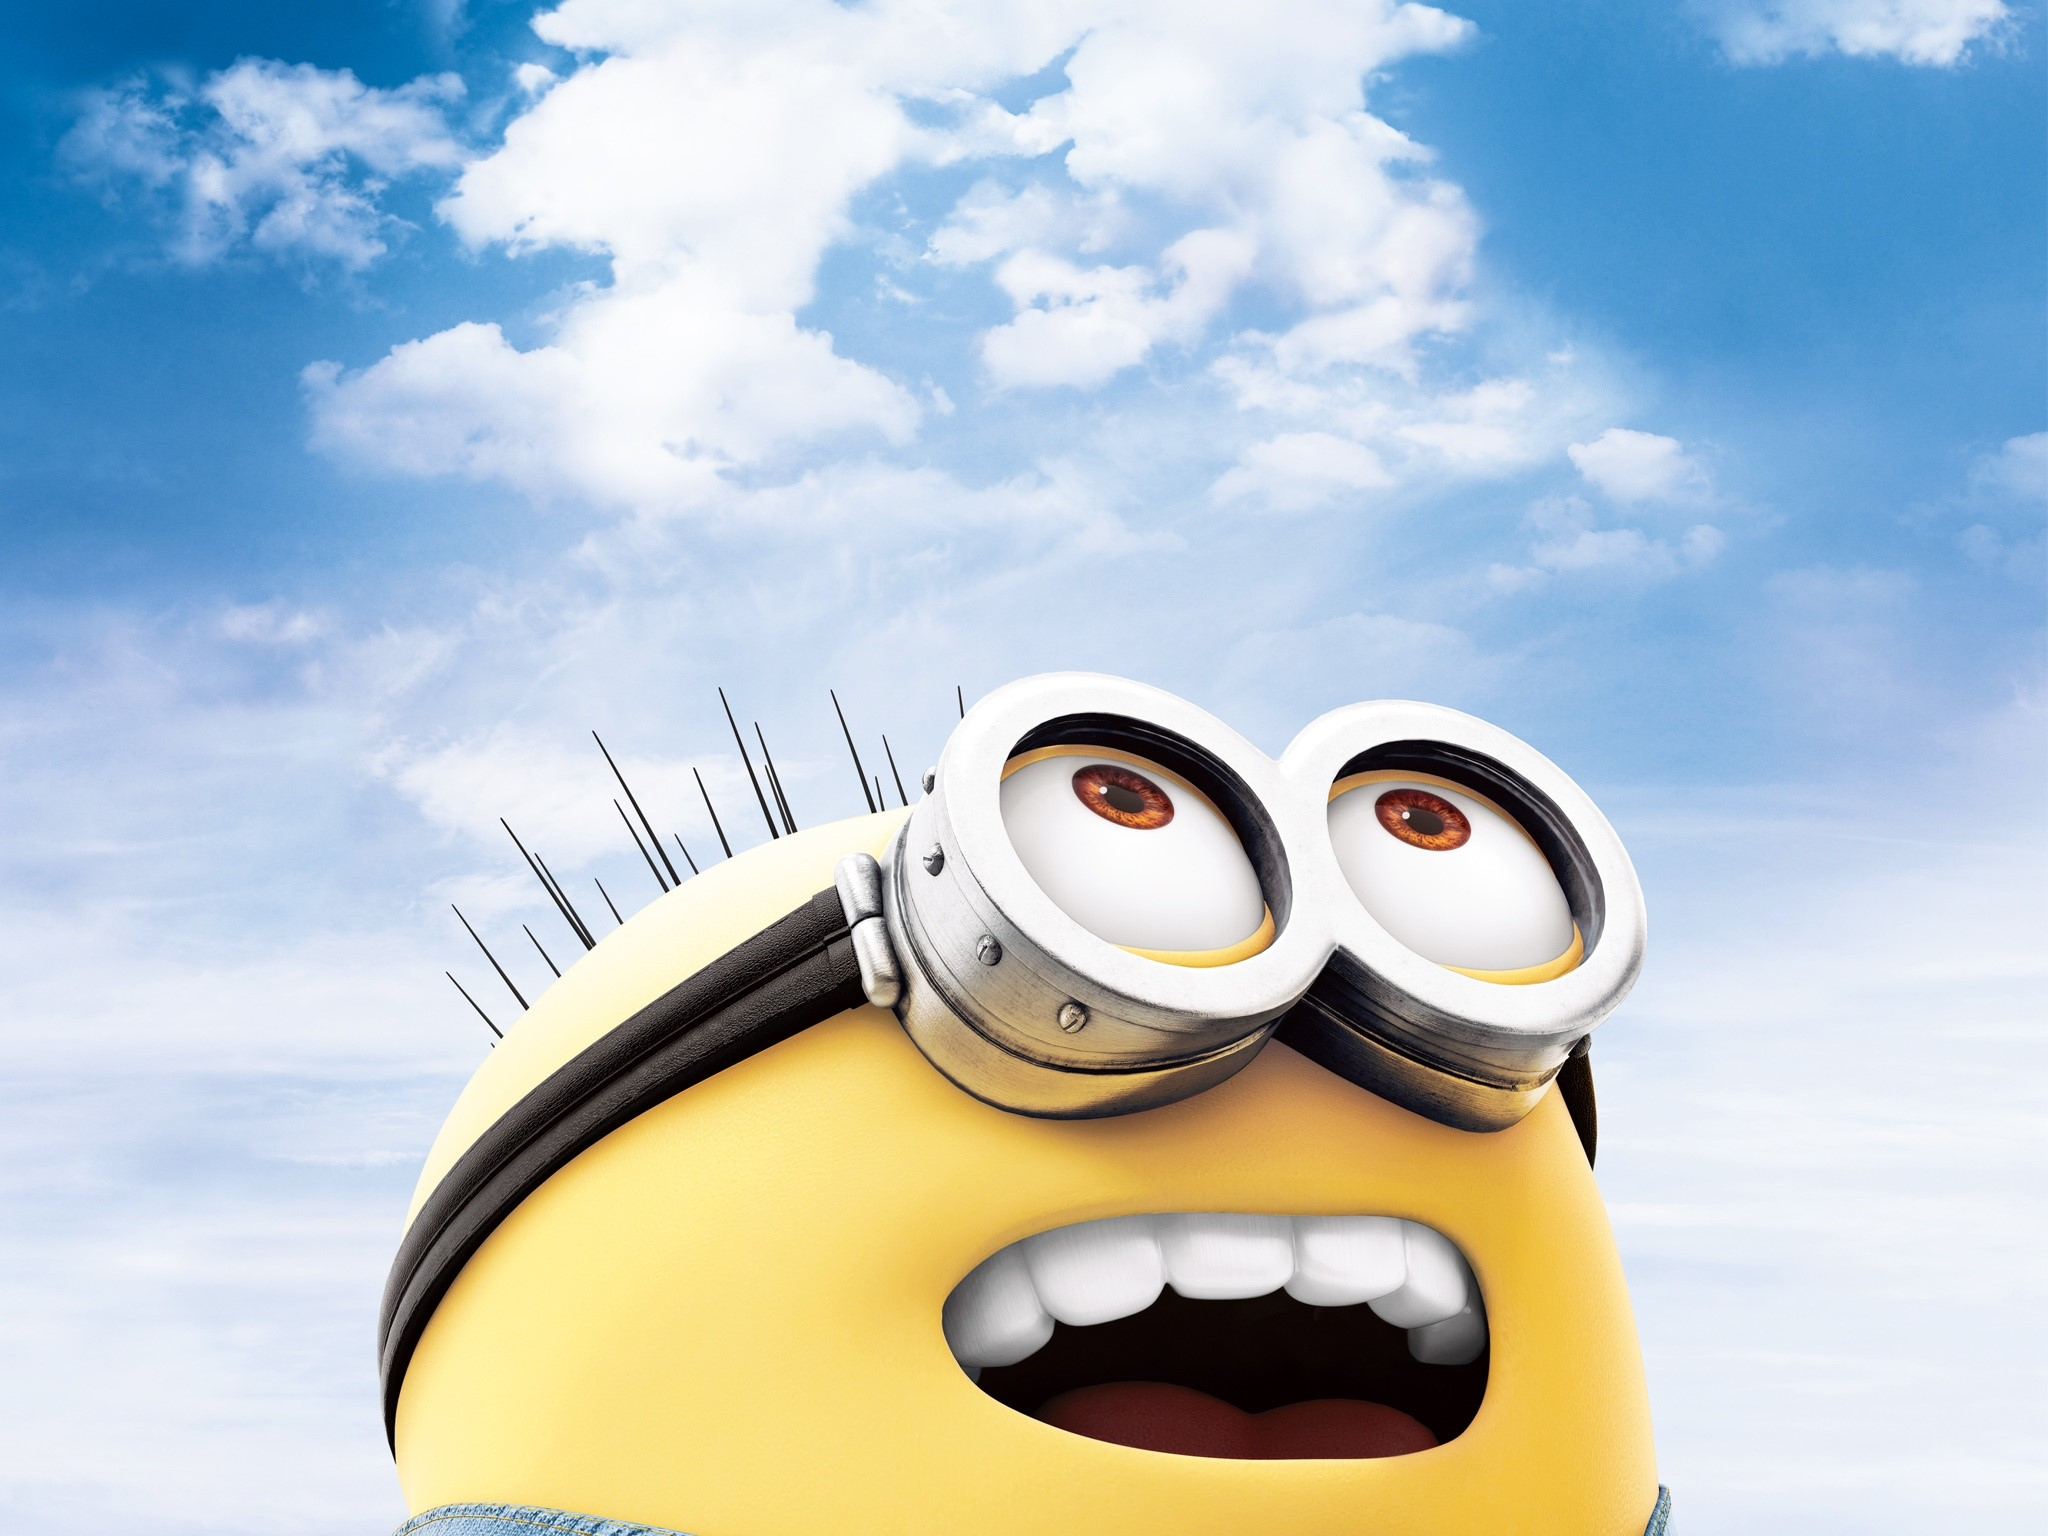 Wallpaper Un minion en Mi villano favorito 2 Images